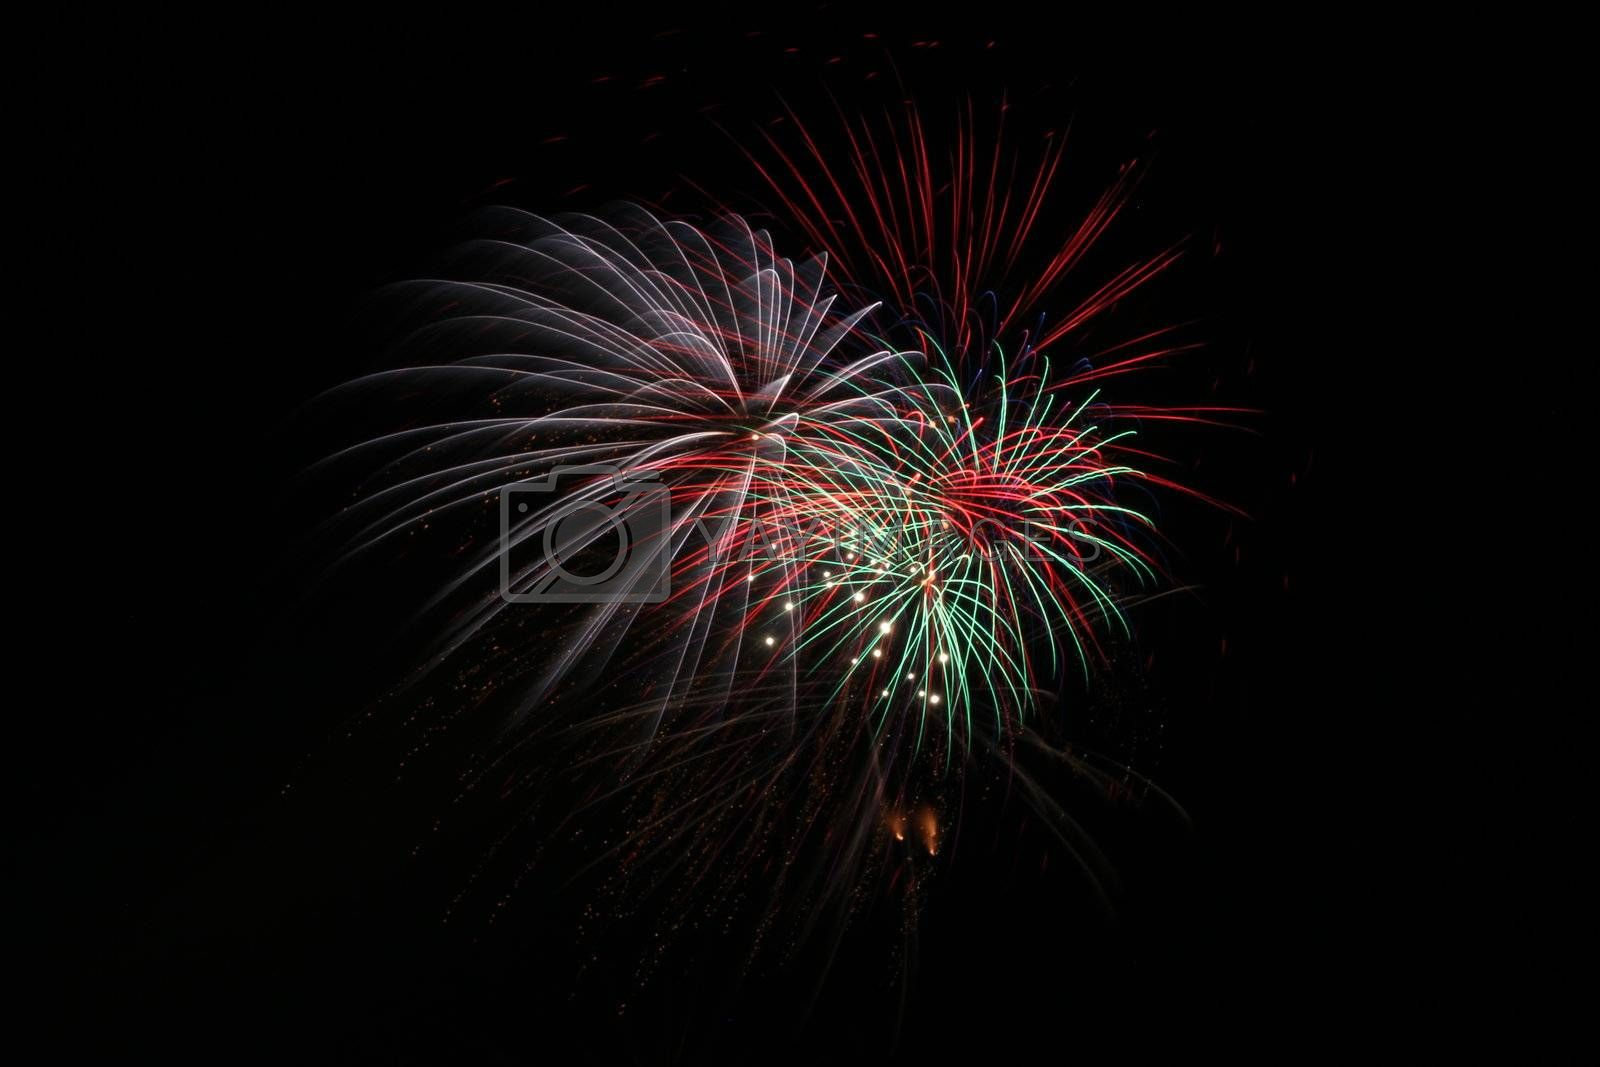 Fireworks during a religious festivity in the south of Italy